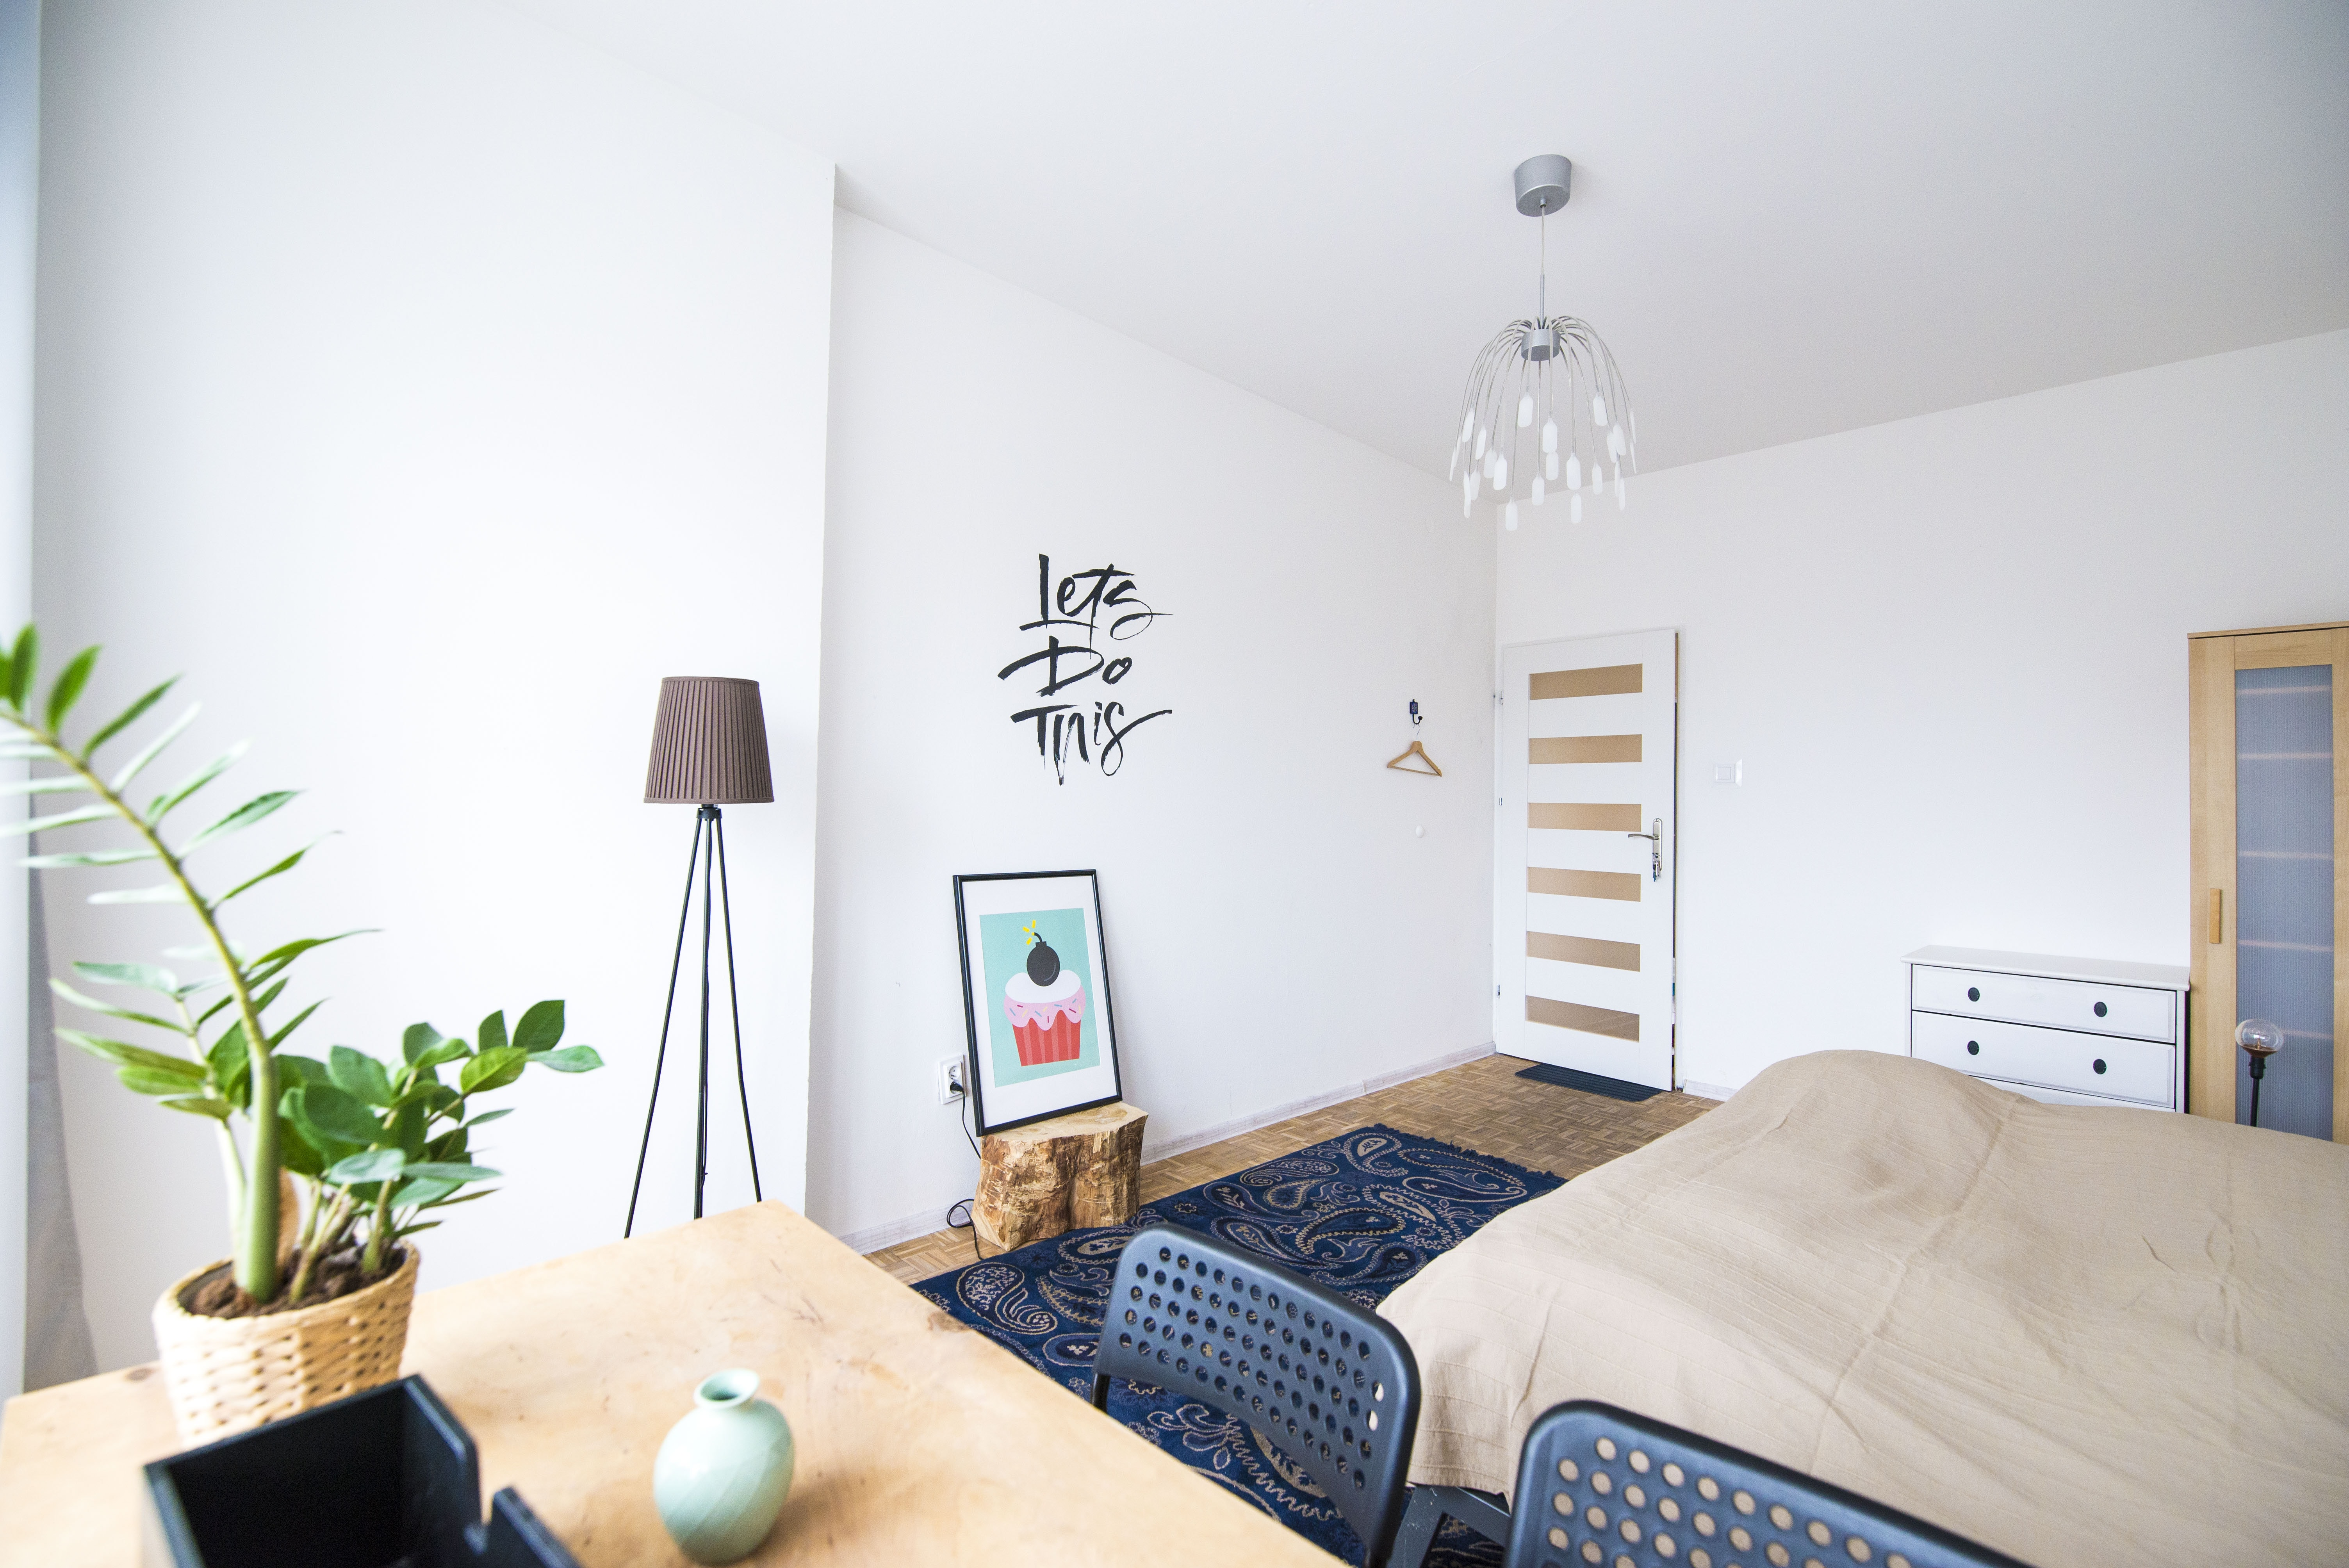 A bedroom with a lamp, sofa, bed, desk, plant, painting, and light fixture